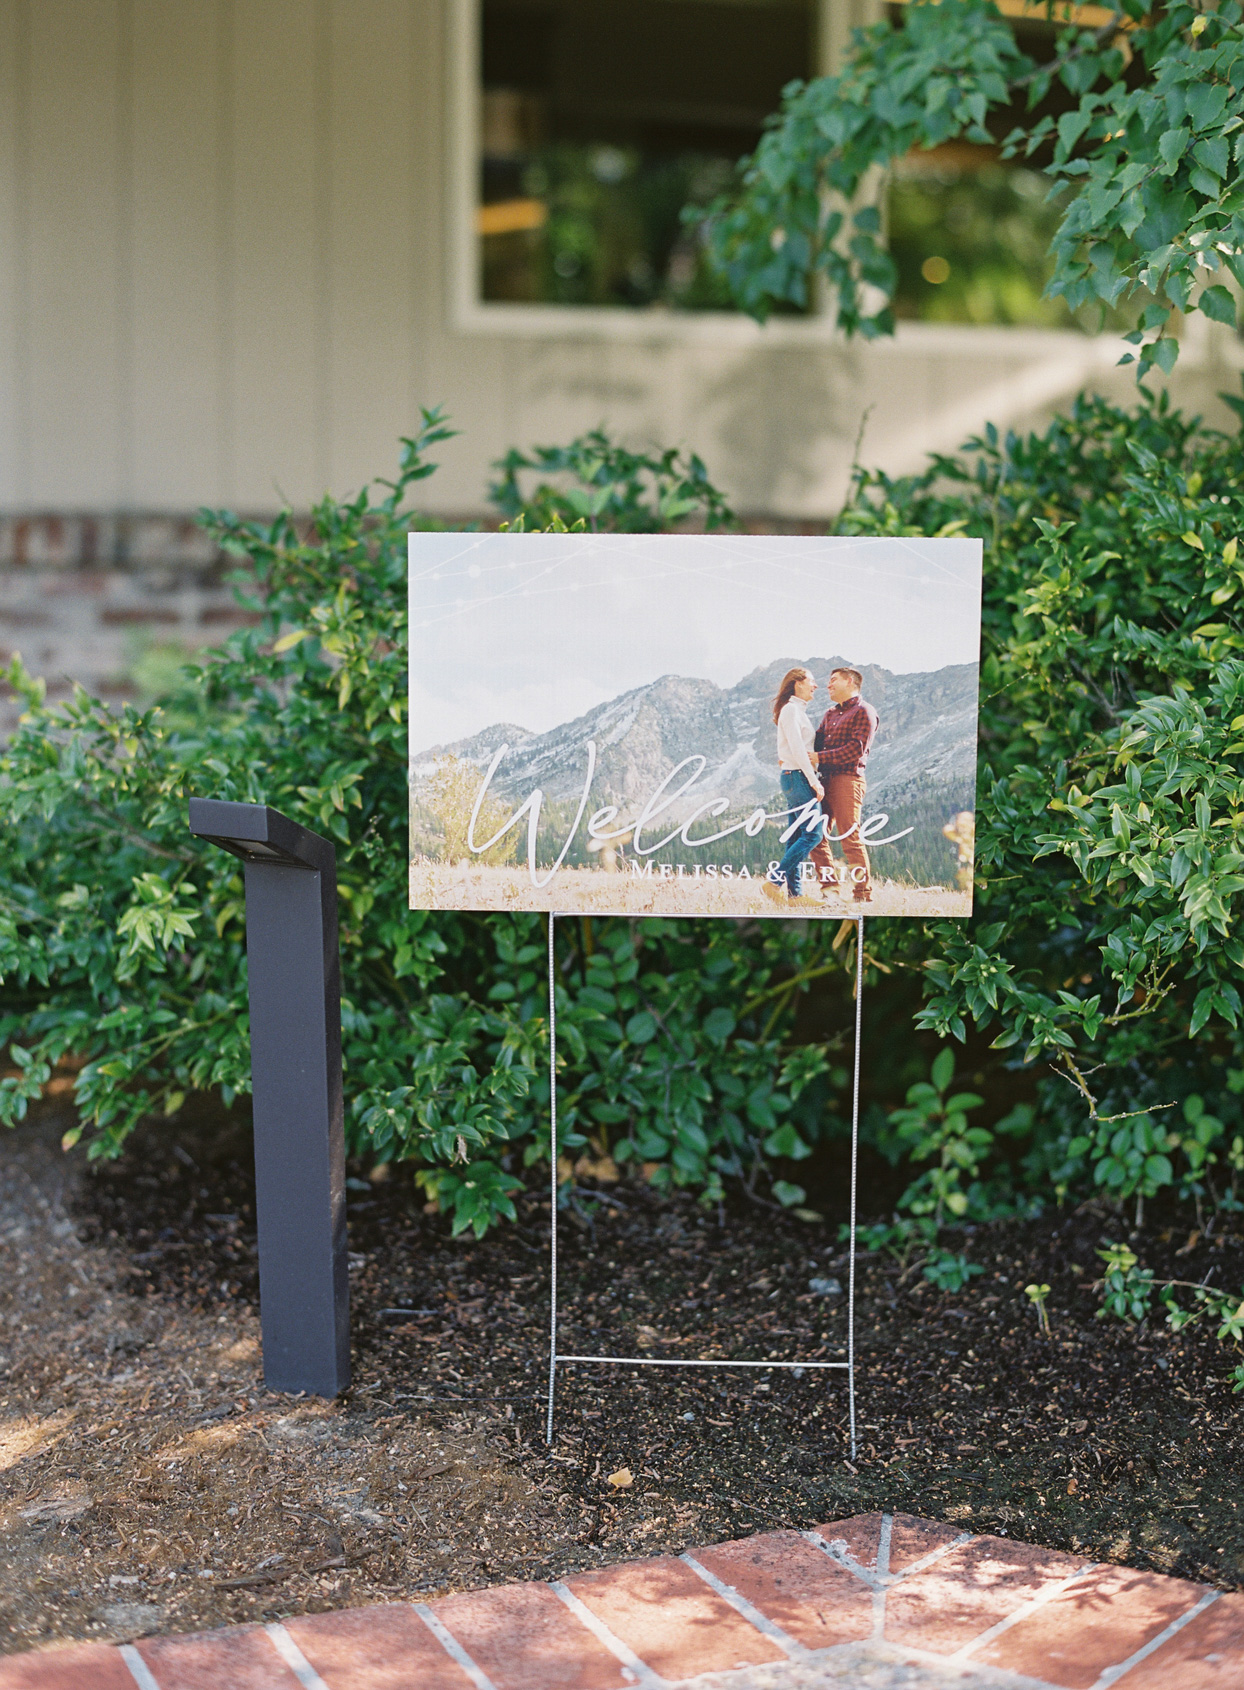 wedding welcome sign against bushes